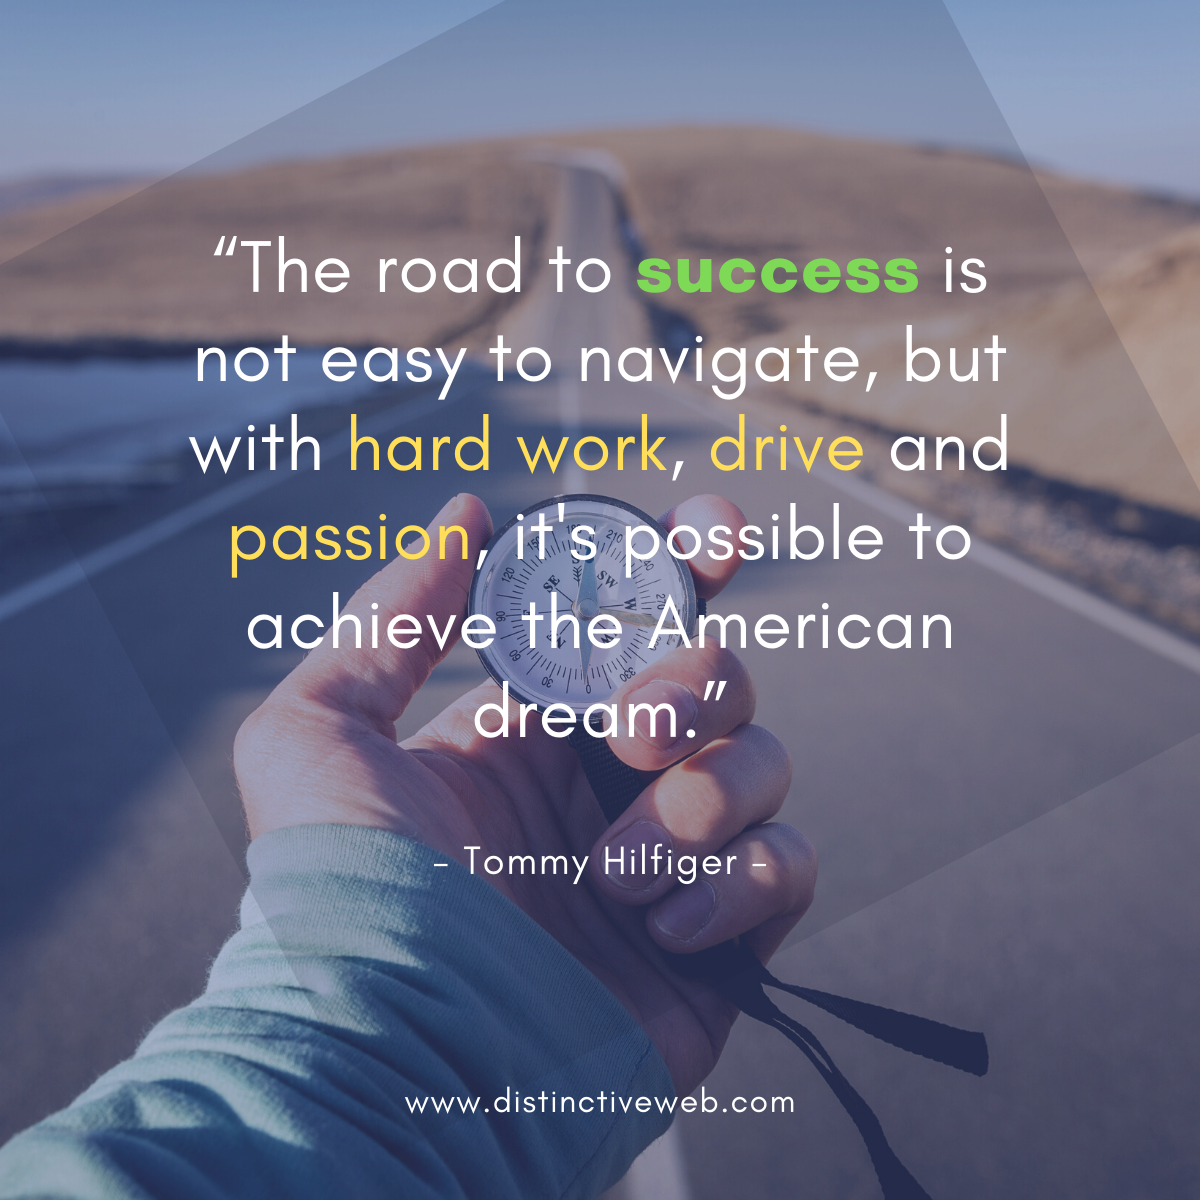 """""""The road to success is not easy to navigate, but with hard work, drive and passion, it's possible to achieve the American dream."""" -- Tommy Hilfiger"""